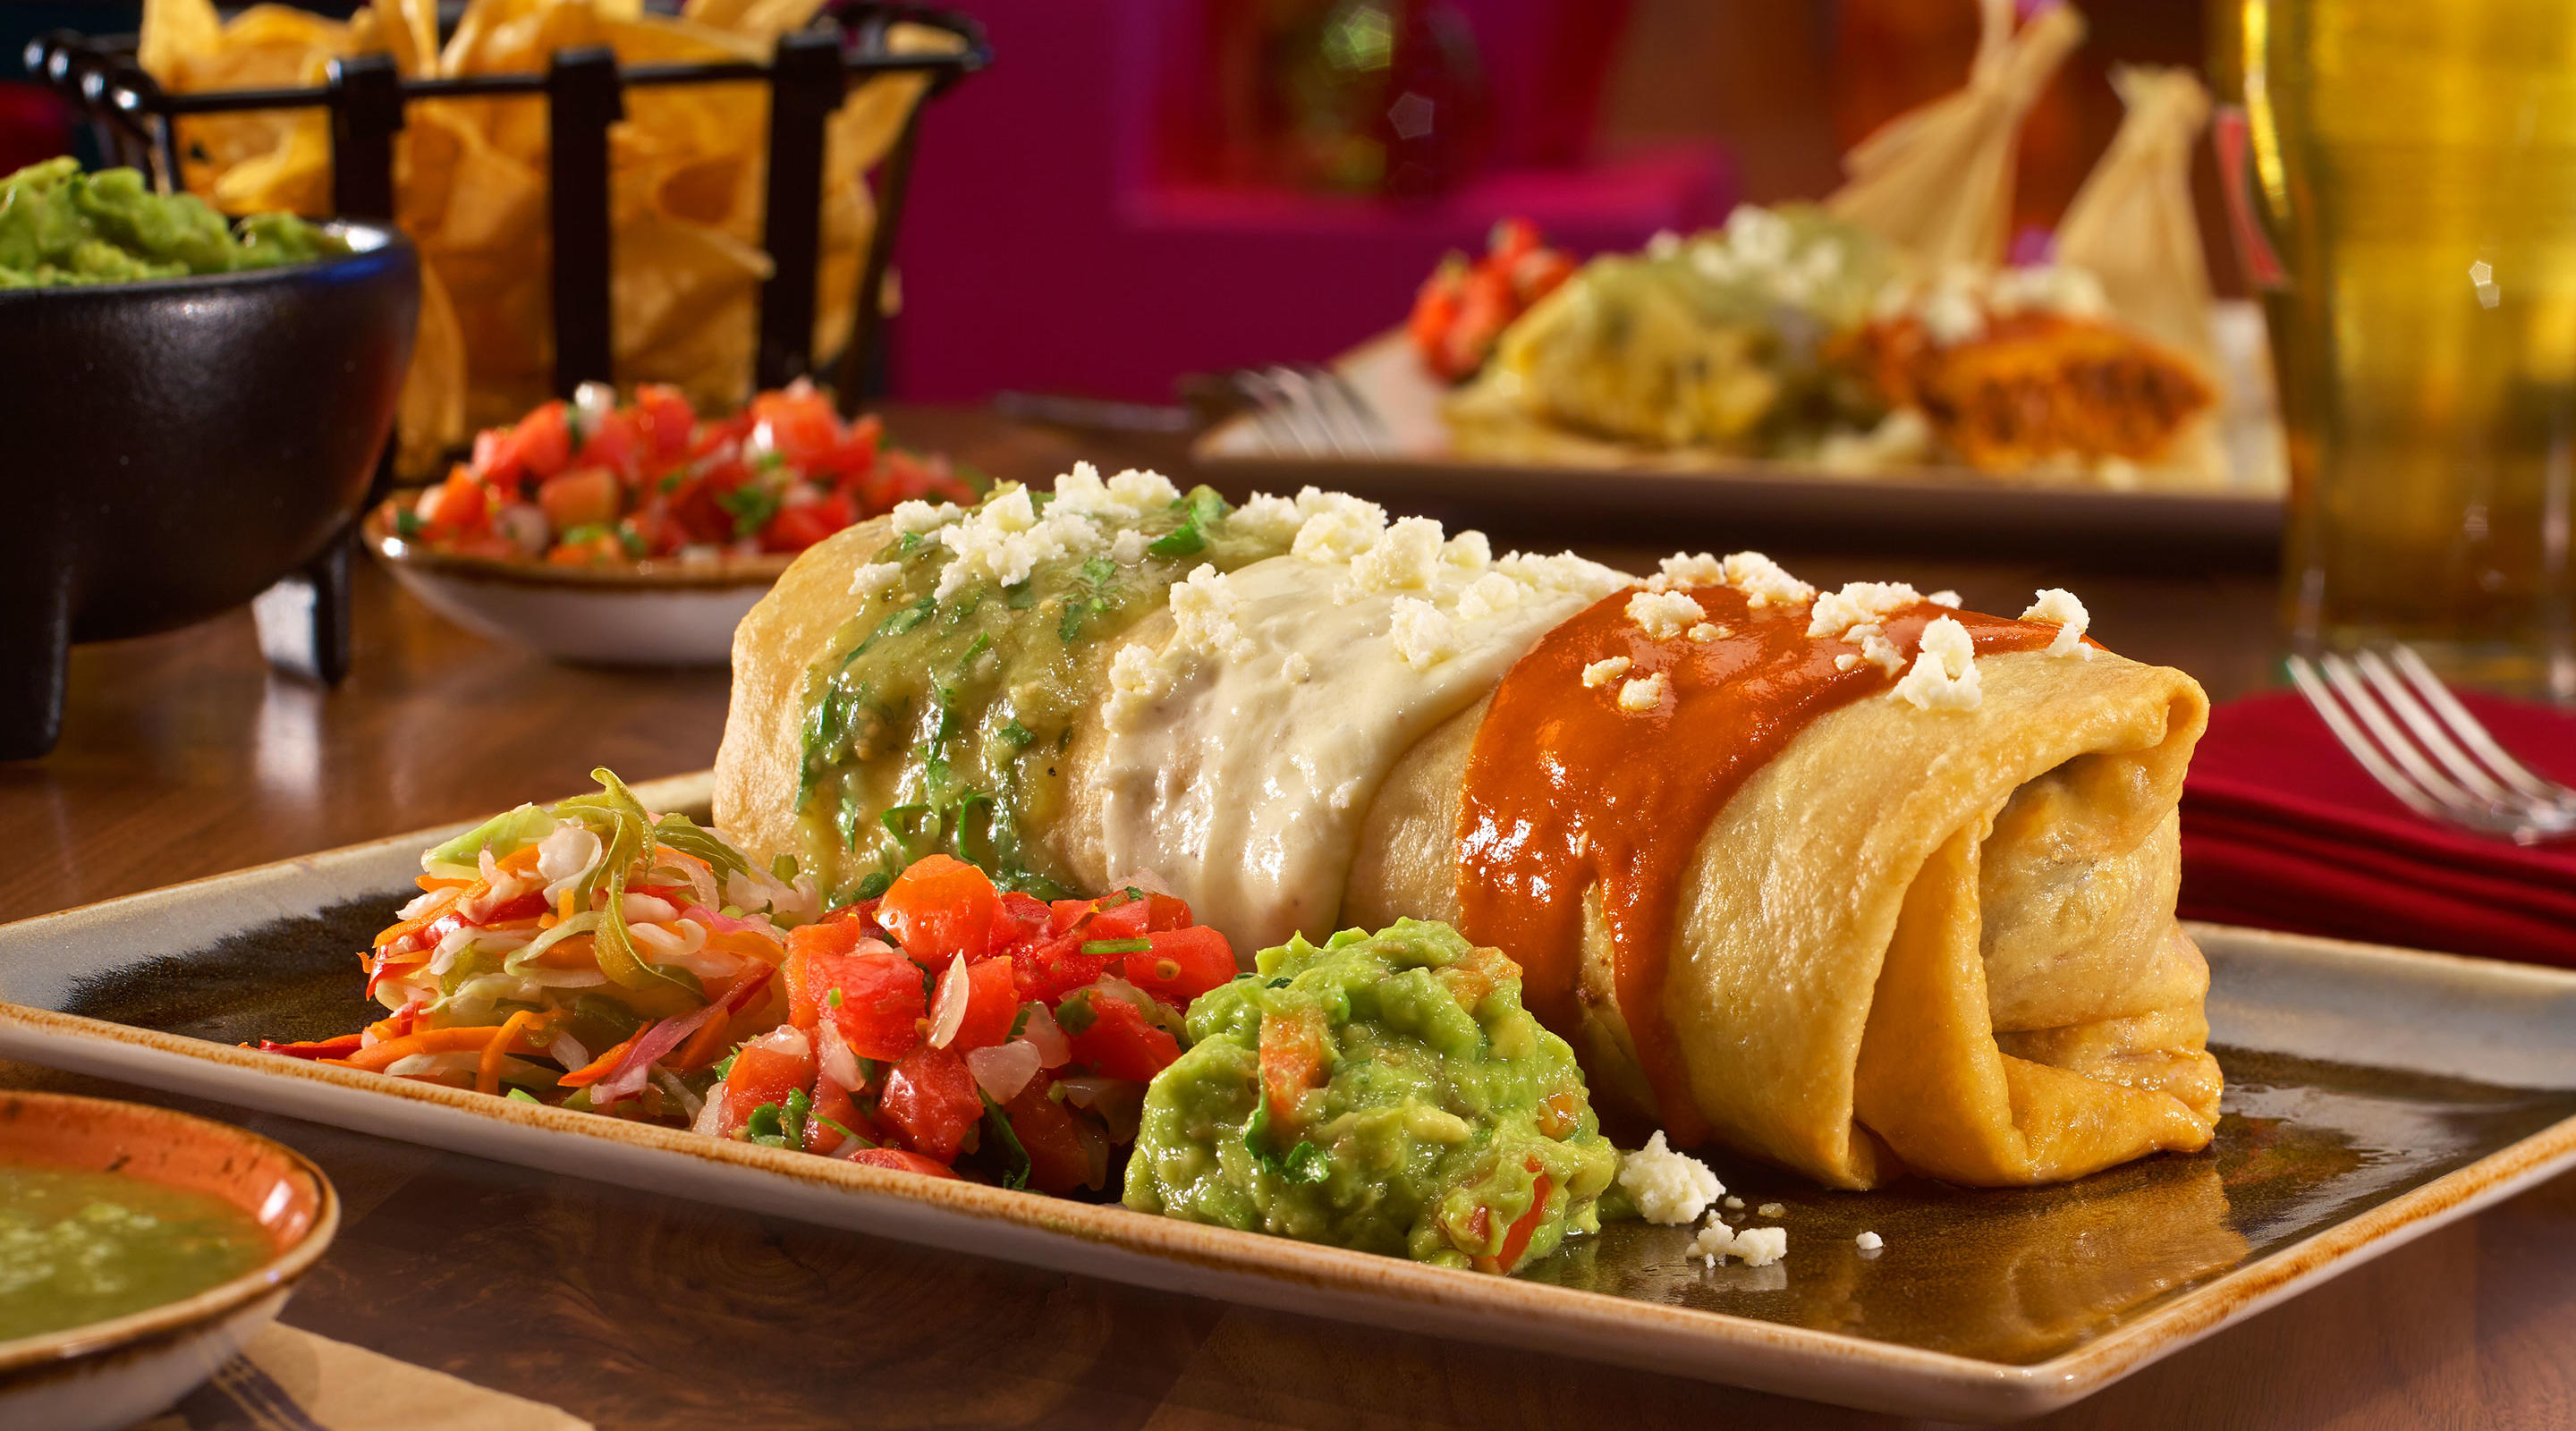 Burrito Banderas style service with pico de gallo, crema and guacamole at Hecho en Vegas.